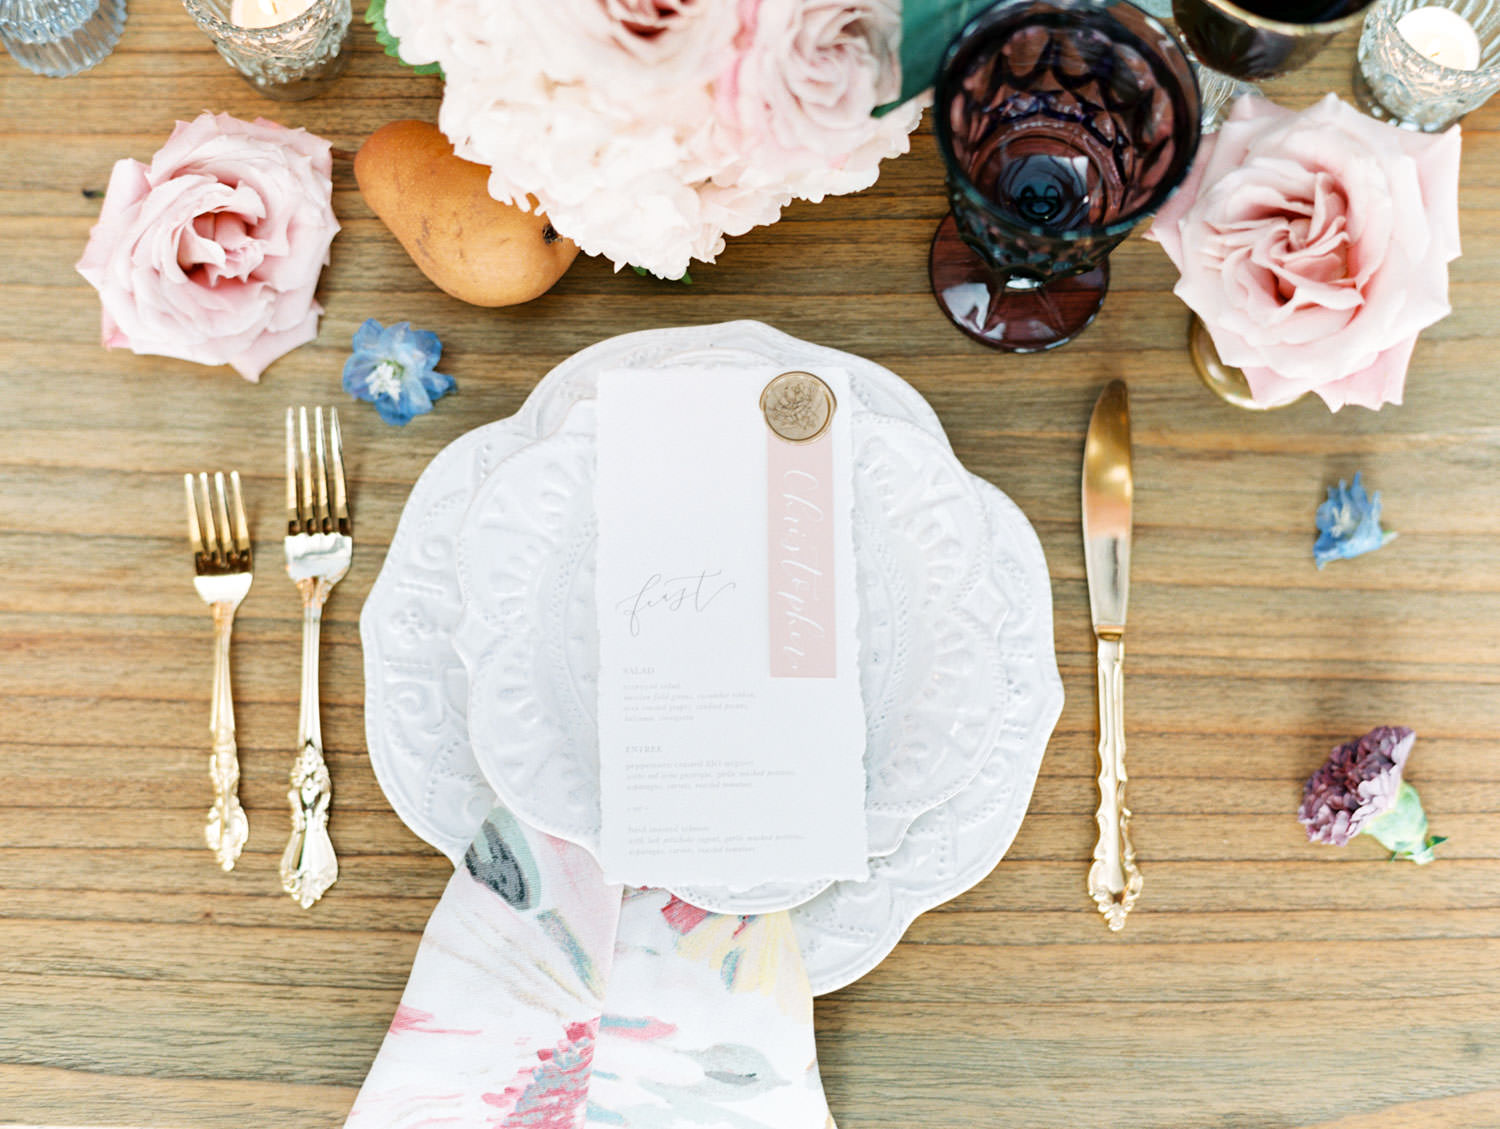 Deep purple water glass, gold coupe, crystal wine glass paired with gold flatware. Golden geese vases with ivory and blush flowers. Floral printed cotton napkins on ivory chargers with ivory menus adorned with wax seal and mauve place card. Film by Cavin Elizabeth Photography.